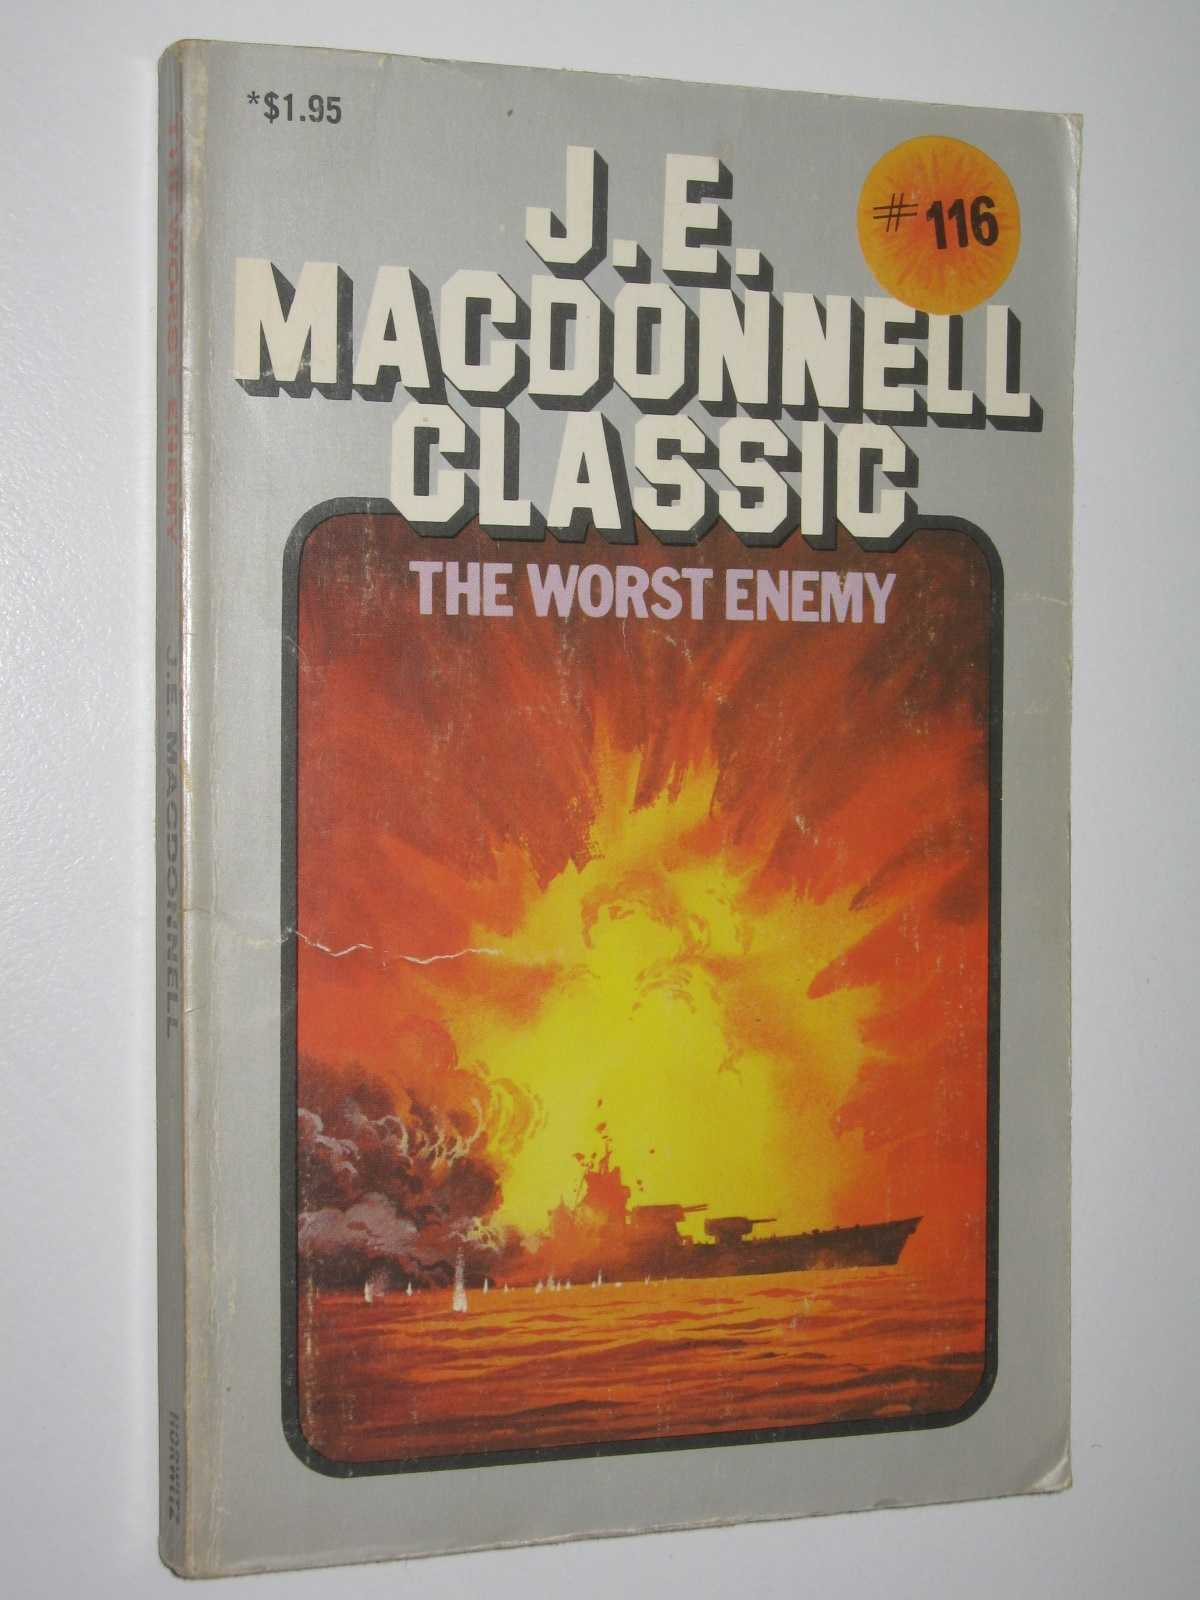 The Worst Enemy - Classic Series #116, Macdonnell, J. E.